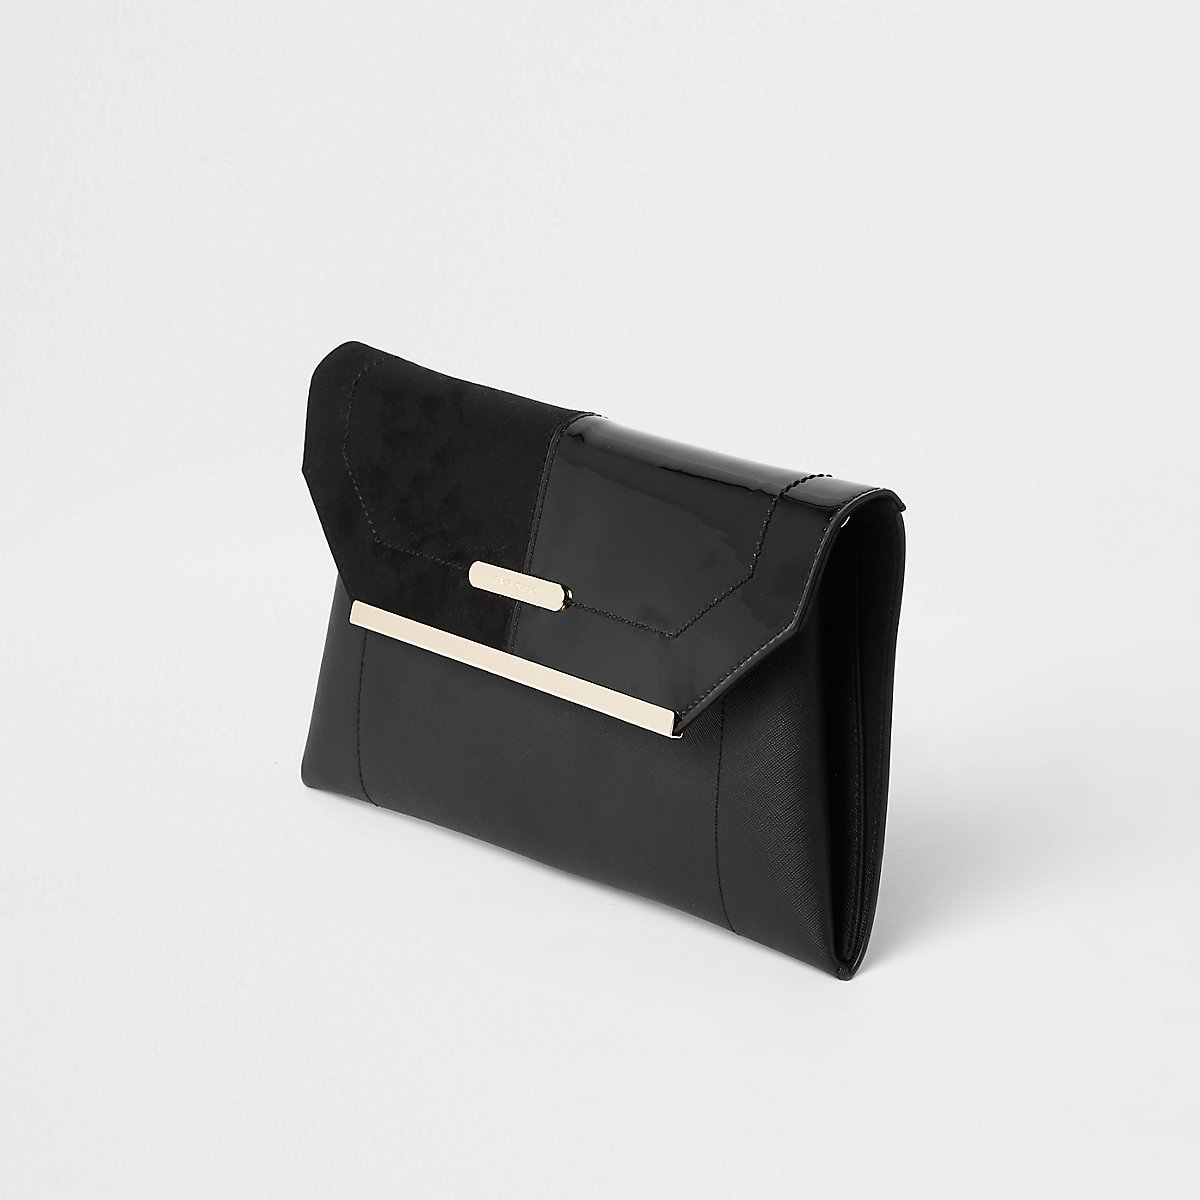 73fc6adb0f5c Black envelope clutch bag - Clutch Bags - Bags   Purses - women